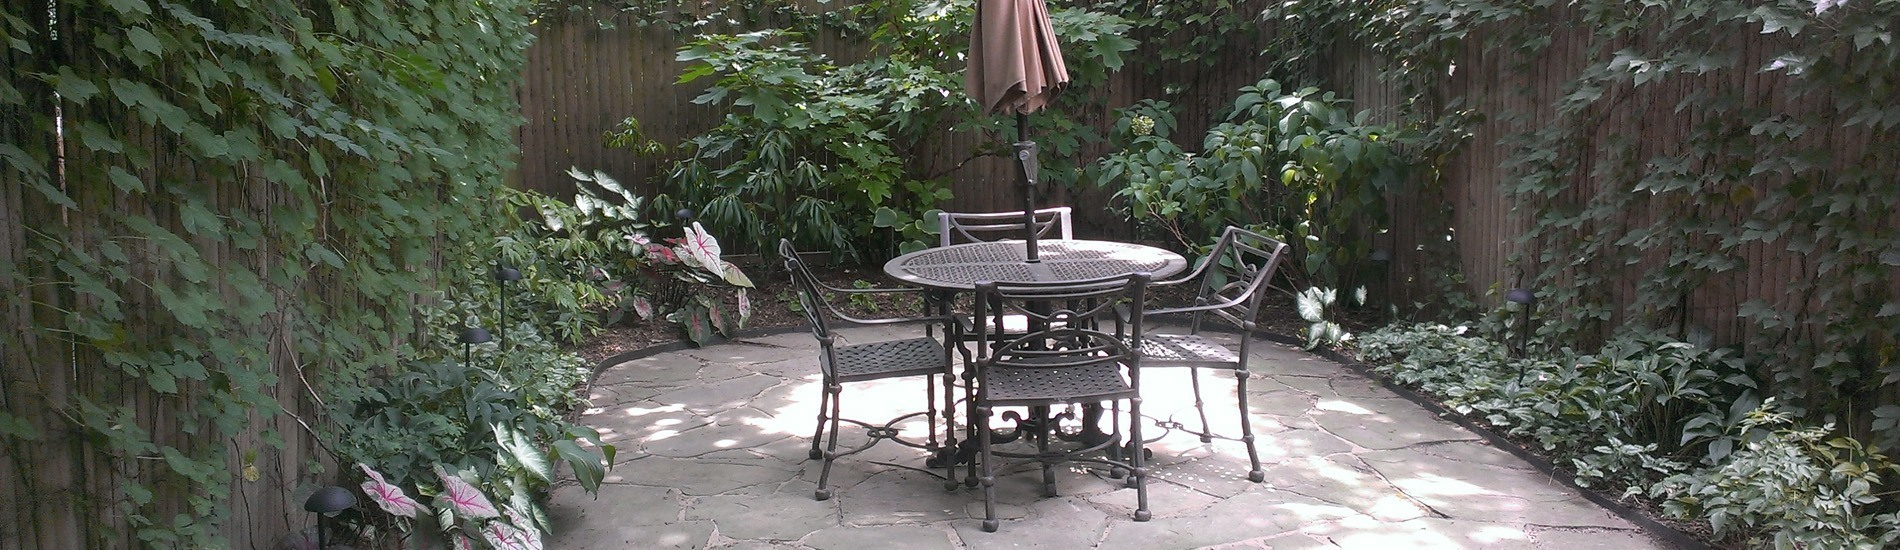 Irregular bluestone patio in Brooklyn